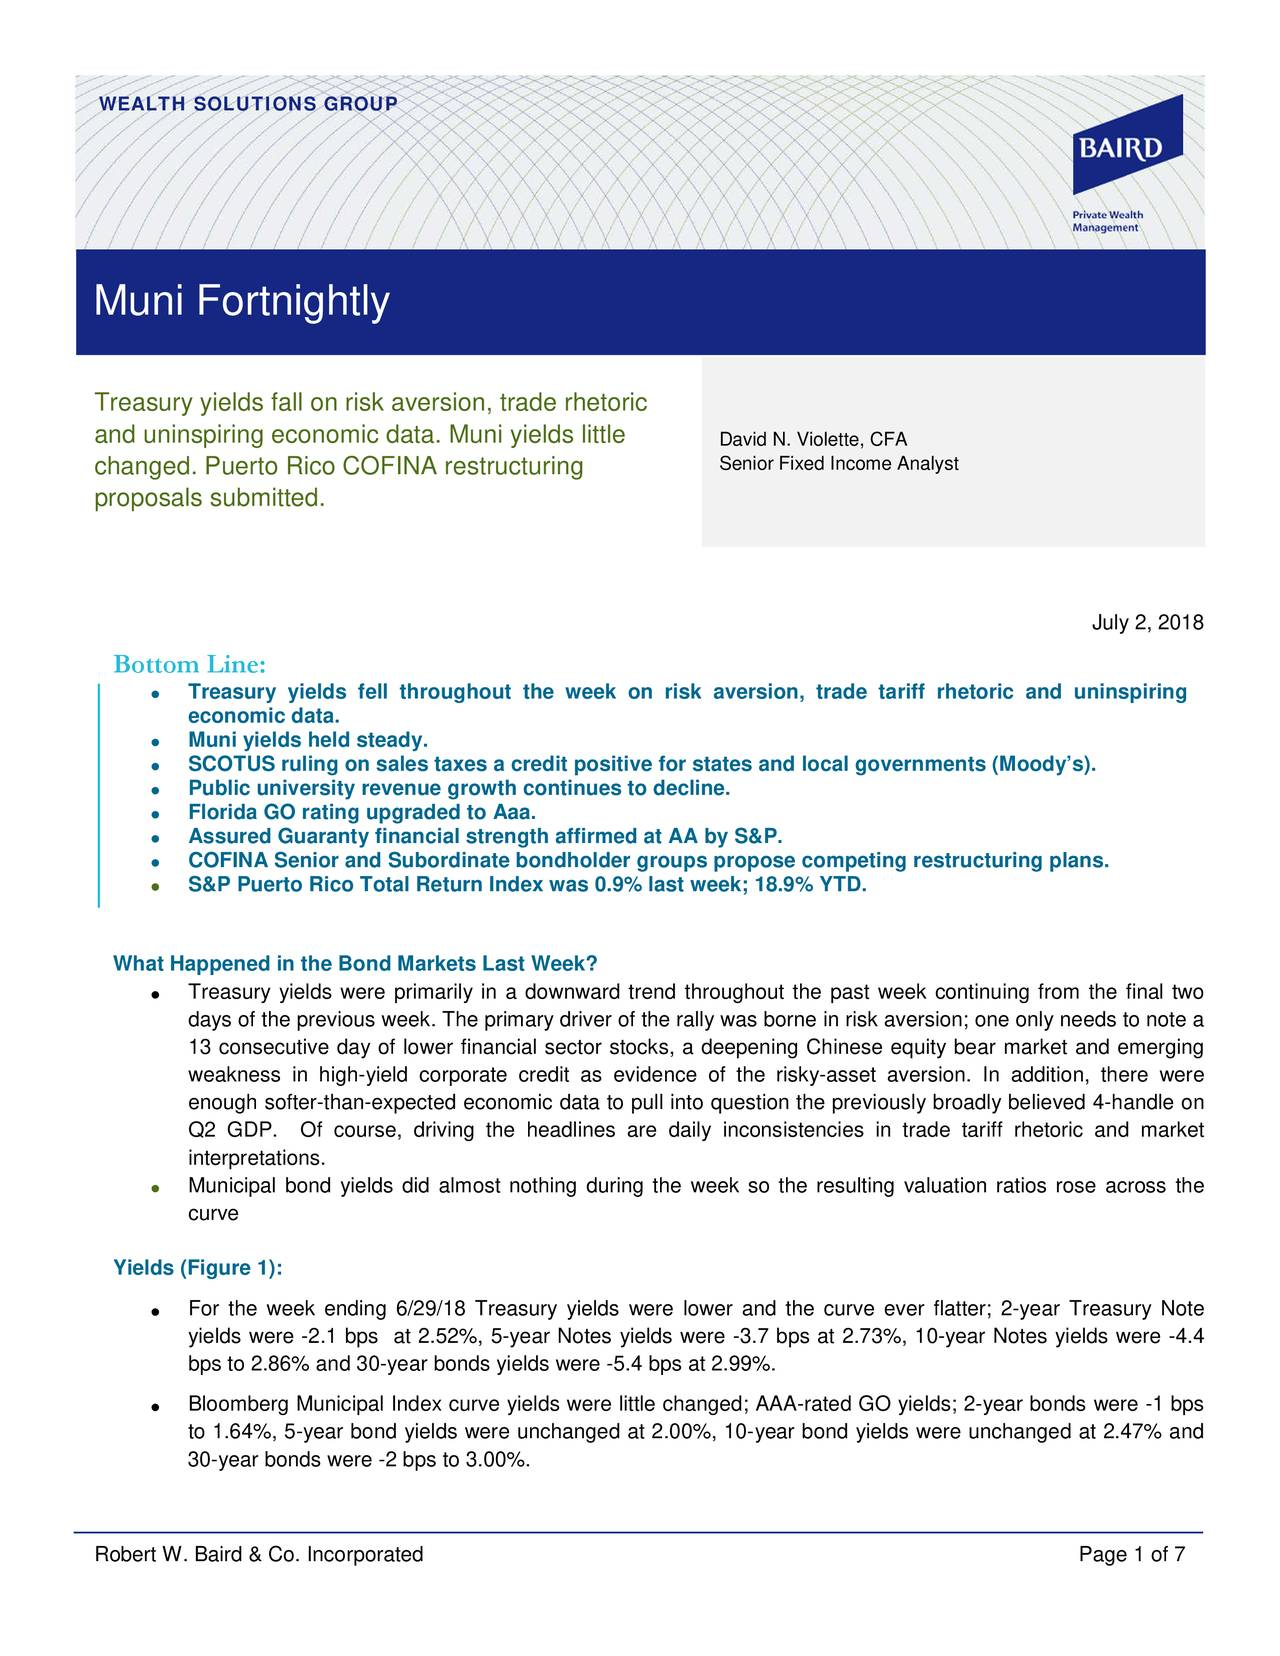 Muni Fortnightly Treasury yields fall on risk aversion, trade rhetoric and uninspiring economic data. Muni yields little David N. Violette, CFA changed. Puerto Rico COFINA restructuring Senior Fixed Income Analyst proposals submitted. July 2, 2018 Bottom Line: • Treasury yields fell throughout the week on risk aversion, trade tariff rhetoric and uninspiring economic data. Muni yields held steady. • • SCOTUS ruling on sales taxes a credit positive for states and local governments (Moody's). • Public university revenue growth continues to decline. • Florida GO rating upgraded to Aaa. • Assured Guaranty financial strength affirmed at AA by S&P. COFINA Senior and Subordinate bondholder groups propose competing restructuring plans. • • S&P Puerto Rico Total Return Index was 0.9% last week; 18.9% YTD. What Happened in the Bond Markets Last Week? • Treasury yields were primarily in a downward trend throughout the past week continuing from the final two days of the previous week. The primary driver of the rally was borne in risk aversion; one only needs to note a 13 consecutive day of lower financial sector stocks, a deepening Chinese equity bear market and emerging weakness in high- yield corporate credit as evidence of the risky-asset aversion. In addition, there were enough softer-than-expected economic data to pull into question the previously broadly believed 4- handle on Q2 GDP. Of course, driving the headlines are daily inconsistencies in trade tariff rhetoric and market interpretations. • Municipal bond yields did almost nothing during the week so the resulting valuation ratios rose across the curve Yields (Figure 1): • For the w eek ending 6/29/18 Treasury yields were lower and the curve ever flatter ; 2-year Treasury Note yields were -2.1 bps at 2.52% , 5-year Notes yields were -3.7 bps at 2.73%, 10-year Notes yields were -4.4 bps to 2.86% and 30-year bonds yields were -5.4 bps at 2.99%. • Bloomberg Municipal Index curve yields were little changed; AAA-rated GO yields; 2-year bonds were -1 bps to 1.64%, 5-year bond yields were unchanged at 2.00%, 10-year bond yields were unchanged at 2.47% and 30-year bonds were -2 bps to 3.00%. Robert W. Baird & Co. Incorporated Page 1 of 7